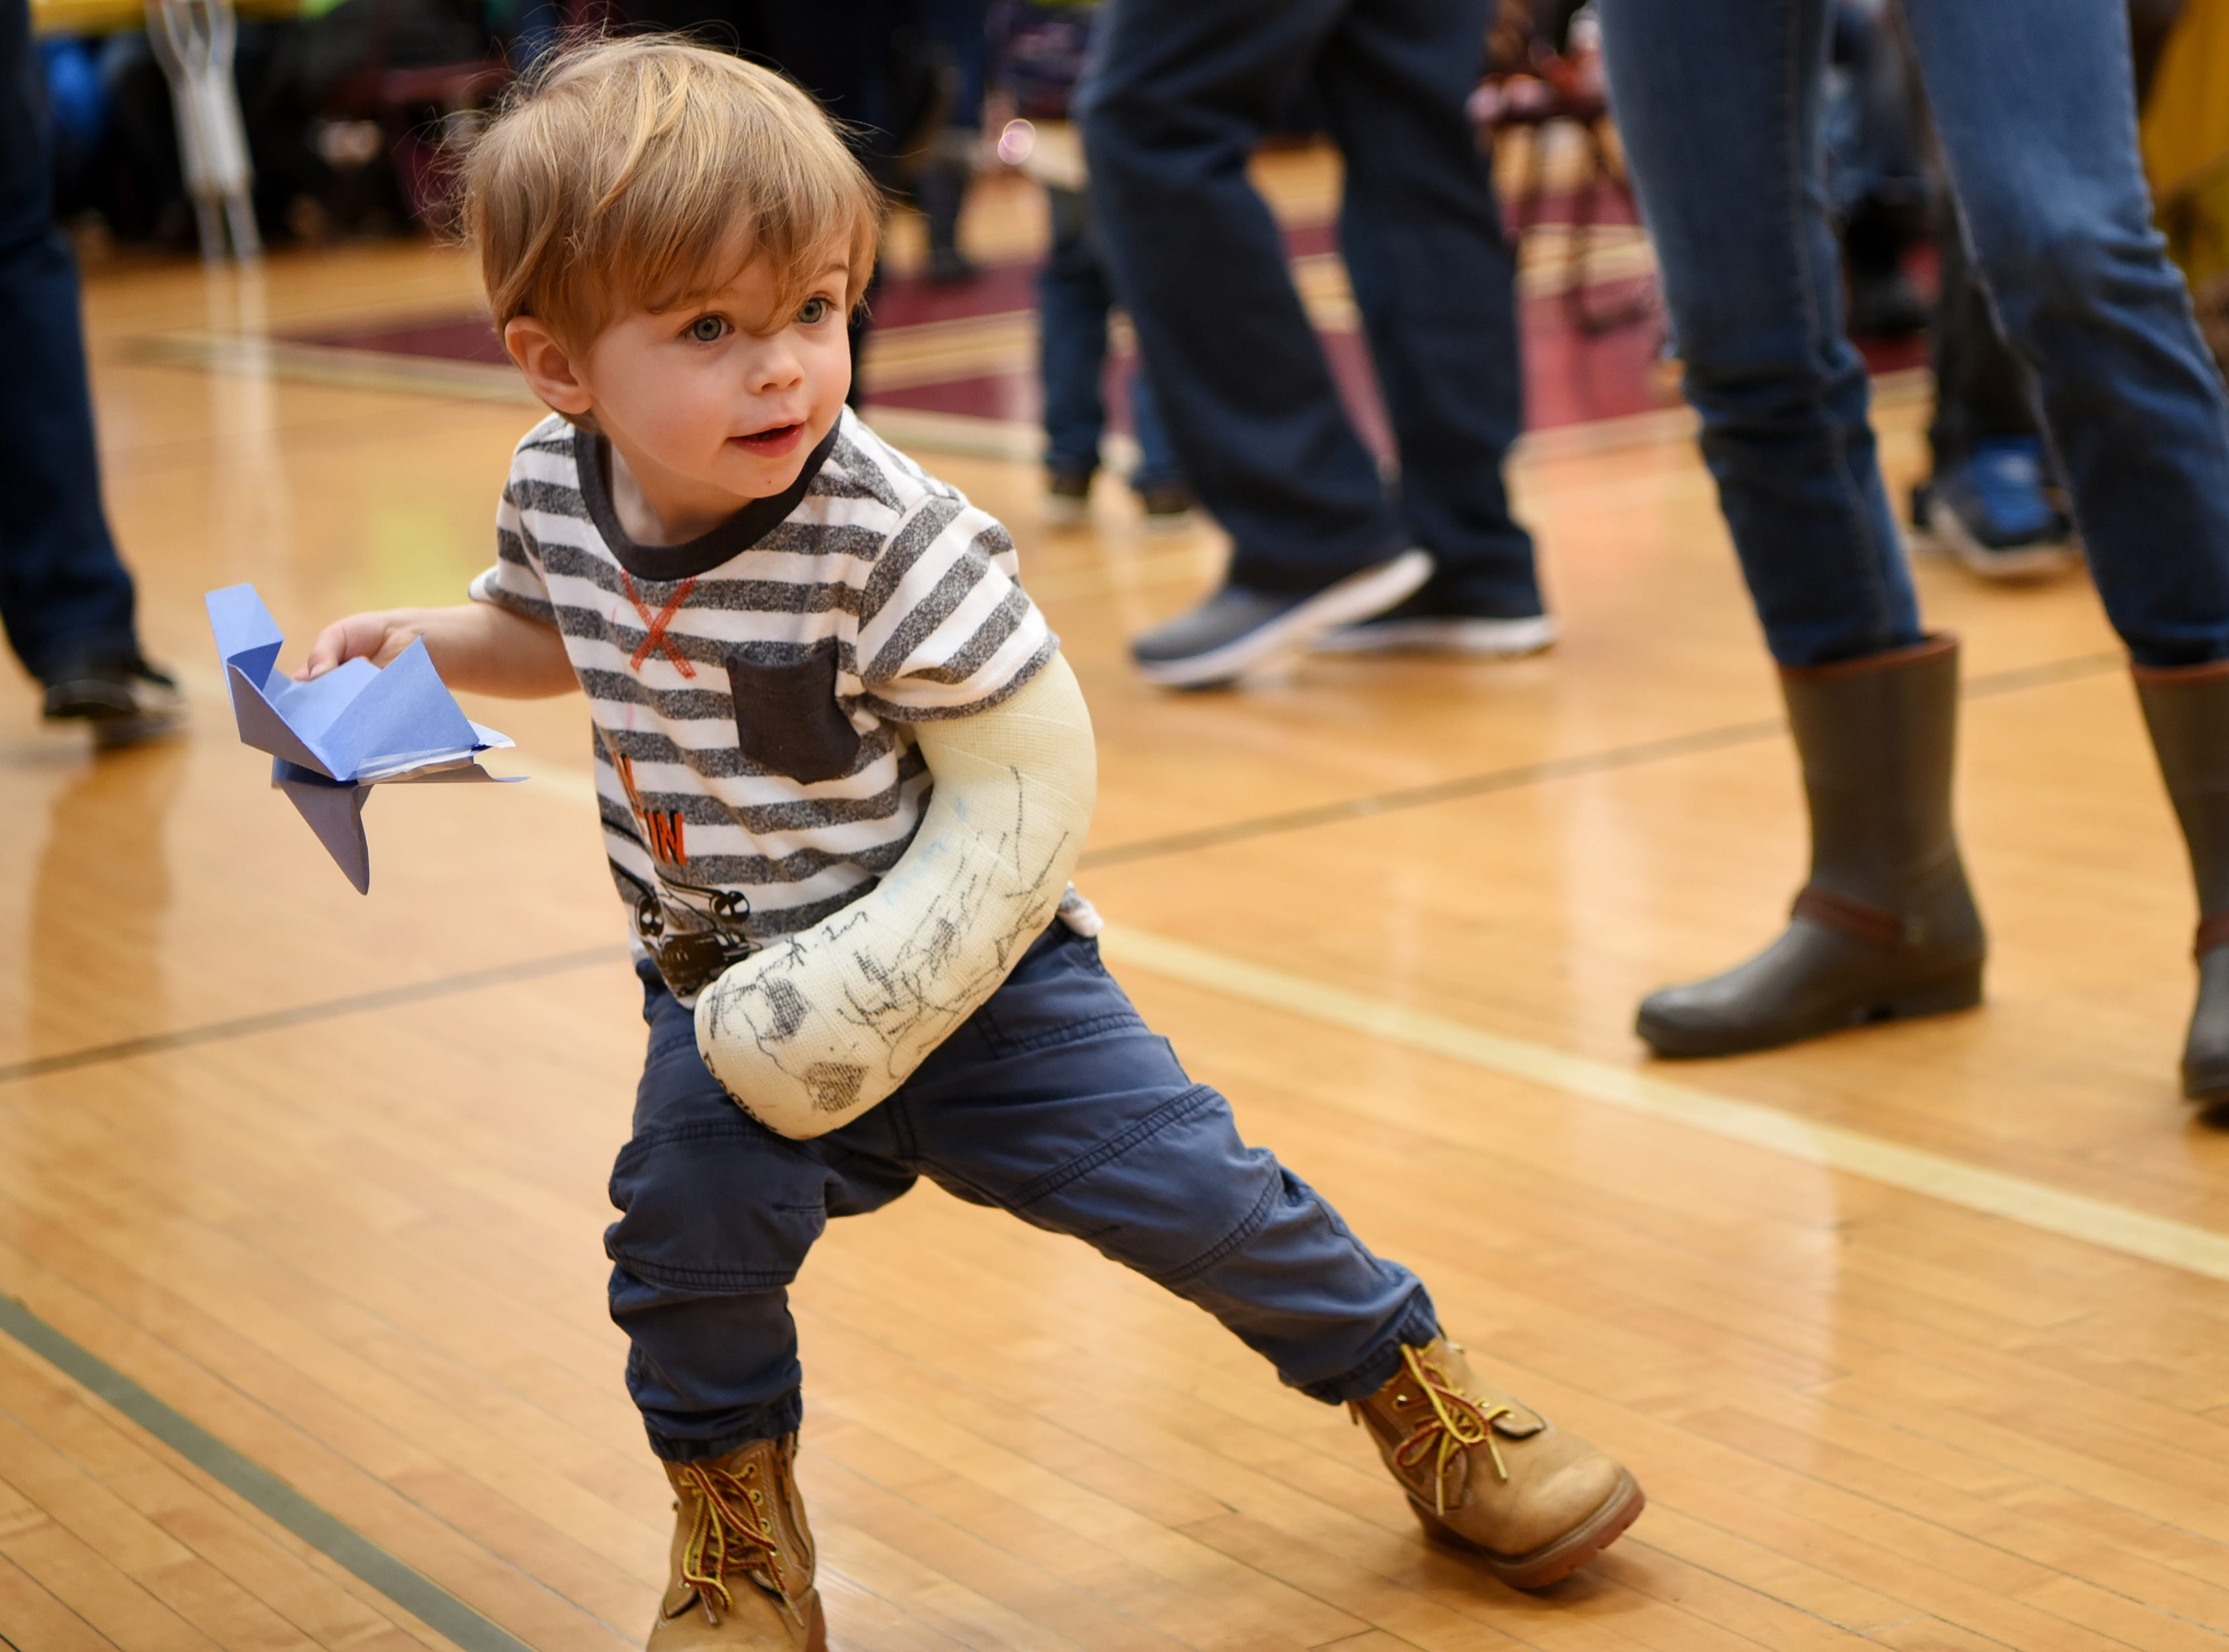 Hunter Pomo, 2, winds up to launch his paper airplane. This is one of many activities during Super Science Saturday held at Ridgewood High School in Ridgewood on Saturday March 2, 2019.